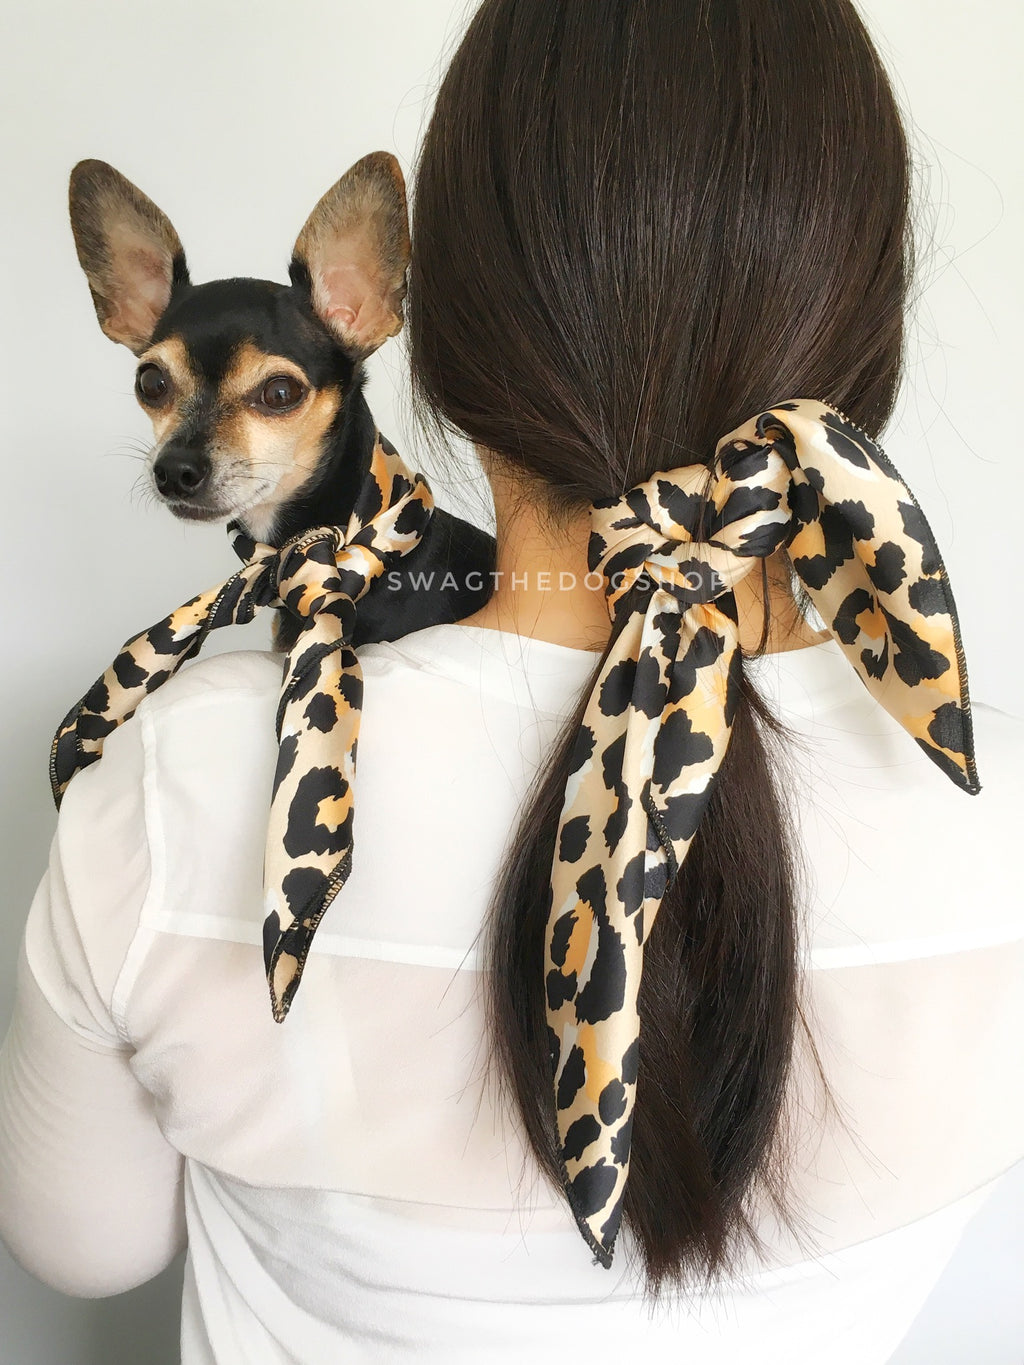 Fierce Beige with Yellow Swagdana Scarf - Woman wearing Swagdana Scarf as Hair Tie and Hugo, The Chihuahua Wearing Swagdana Scarf as Neckerchief. Dog Bandana. Dog Scarf